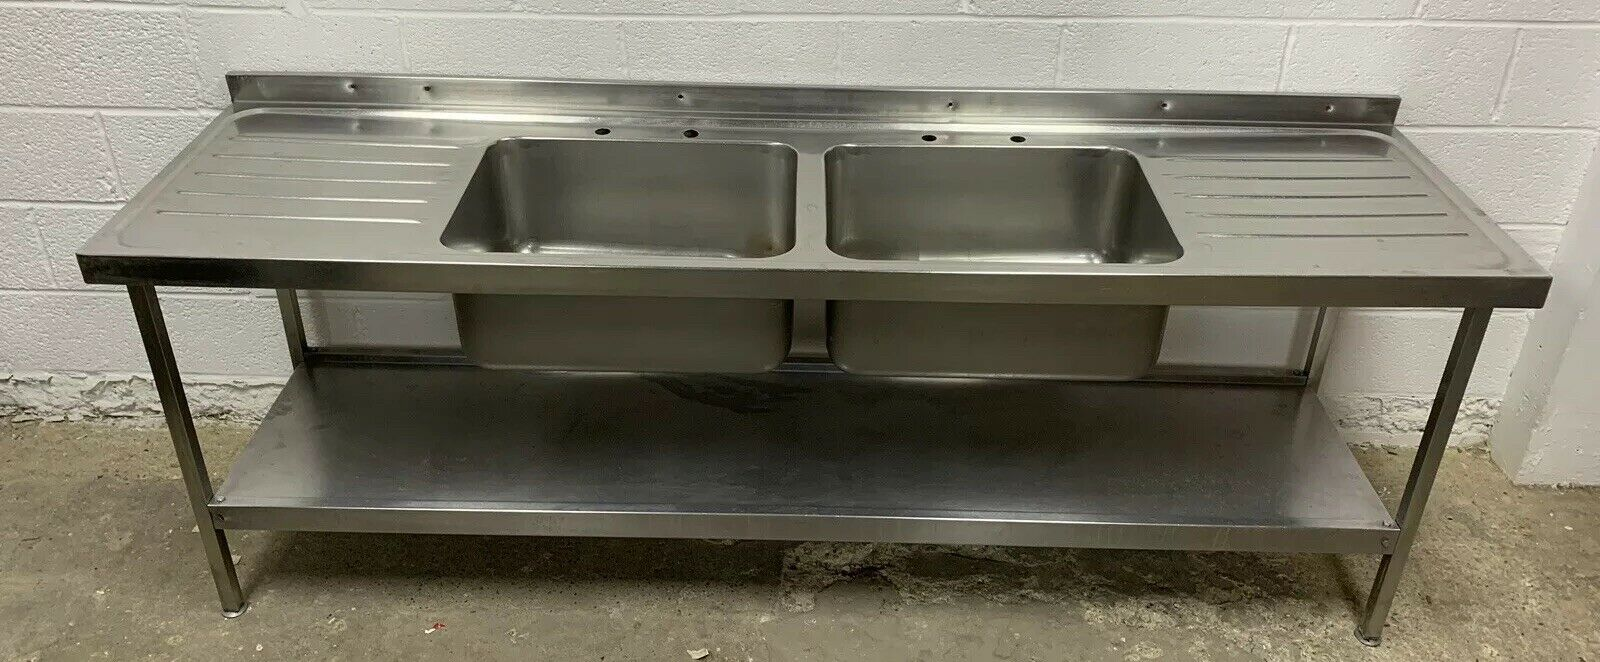 Lot 44 - Stainless Steel Double Bowl Sink With Double Drainer and Upstand